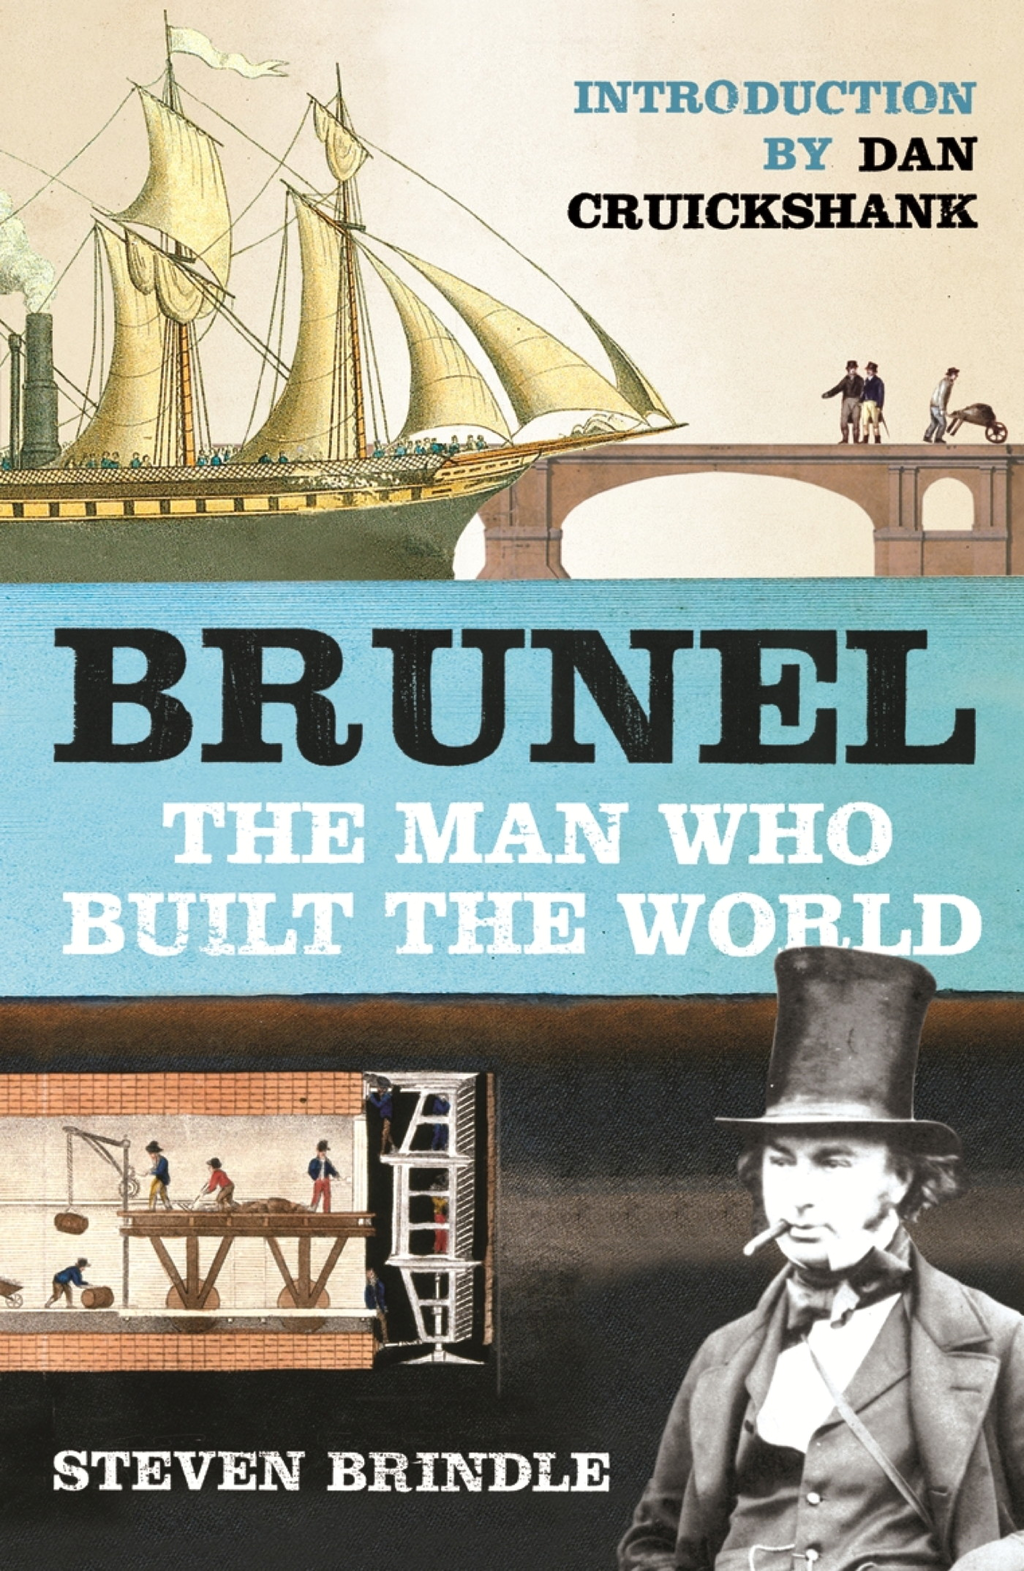 Brunel The Man Who Built the World